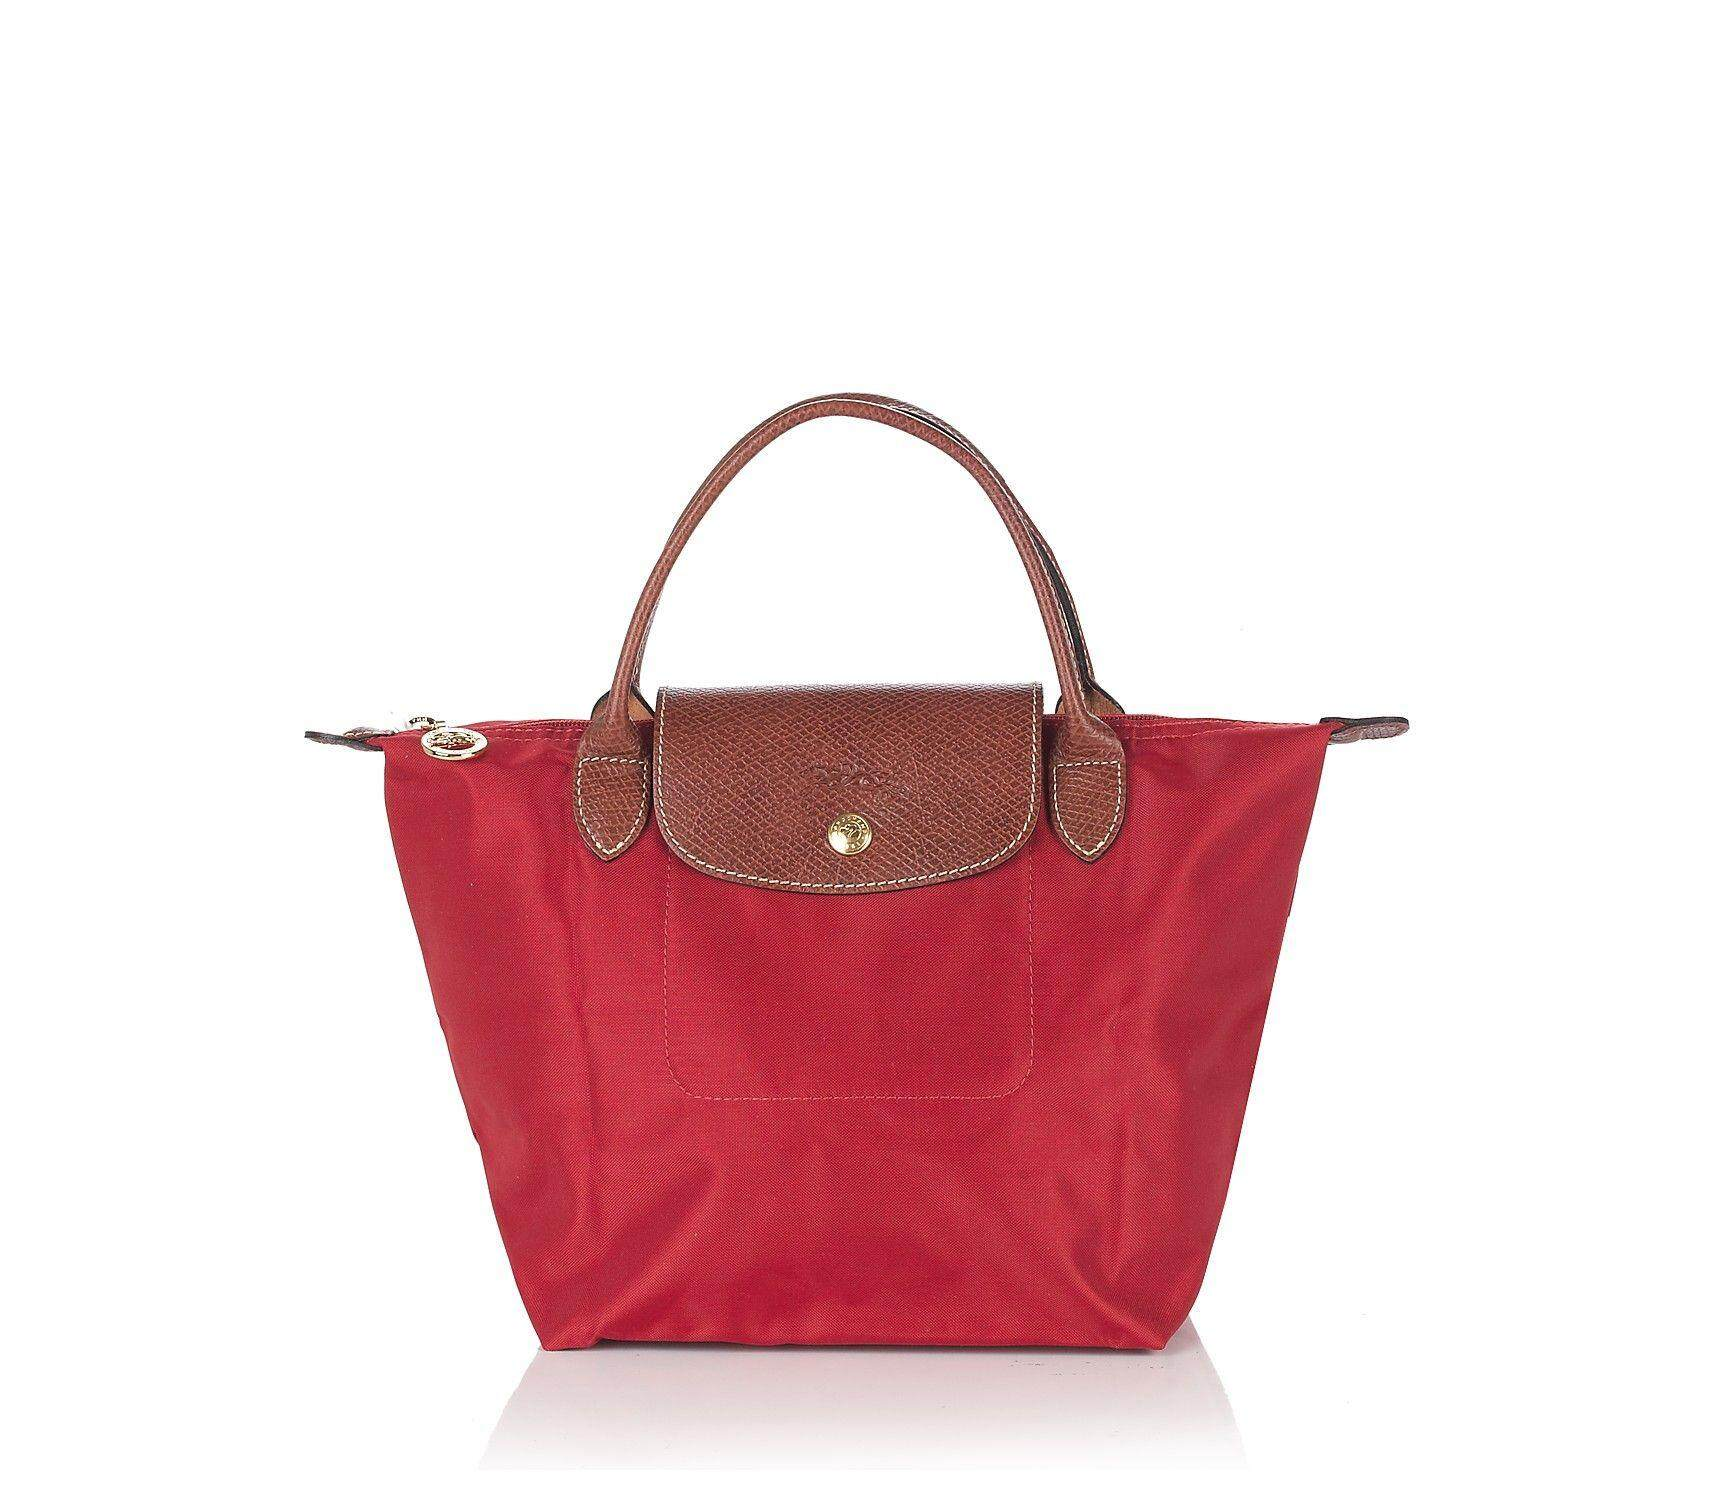 d1aa18aef9c4 LONGCHAMP LE PLIAGE Tote Bag Small - Red (2605089-545)